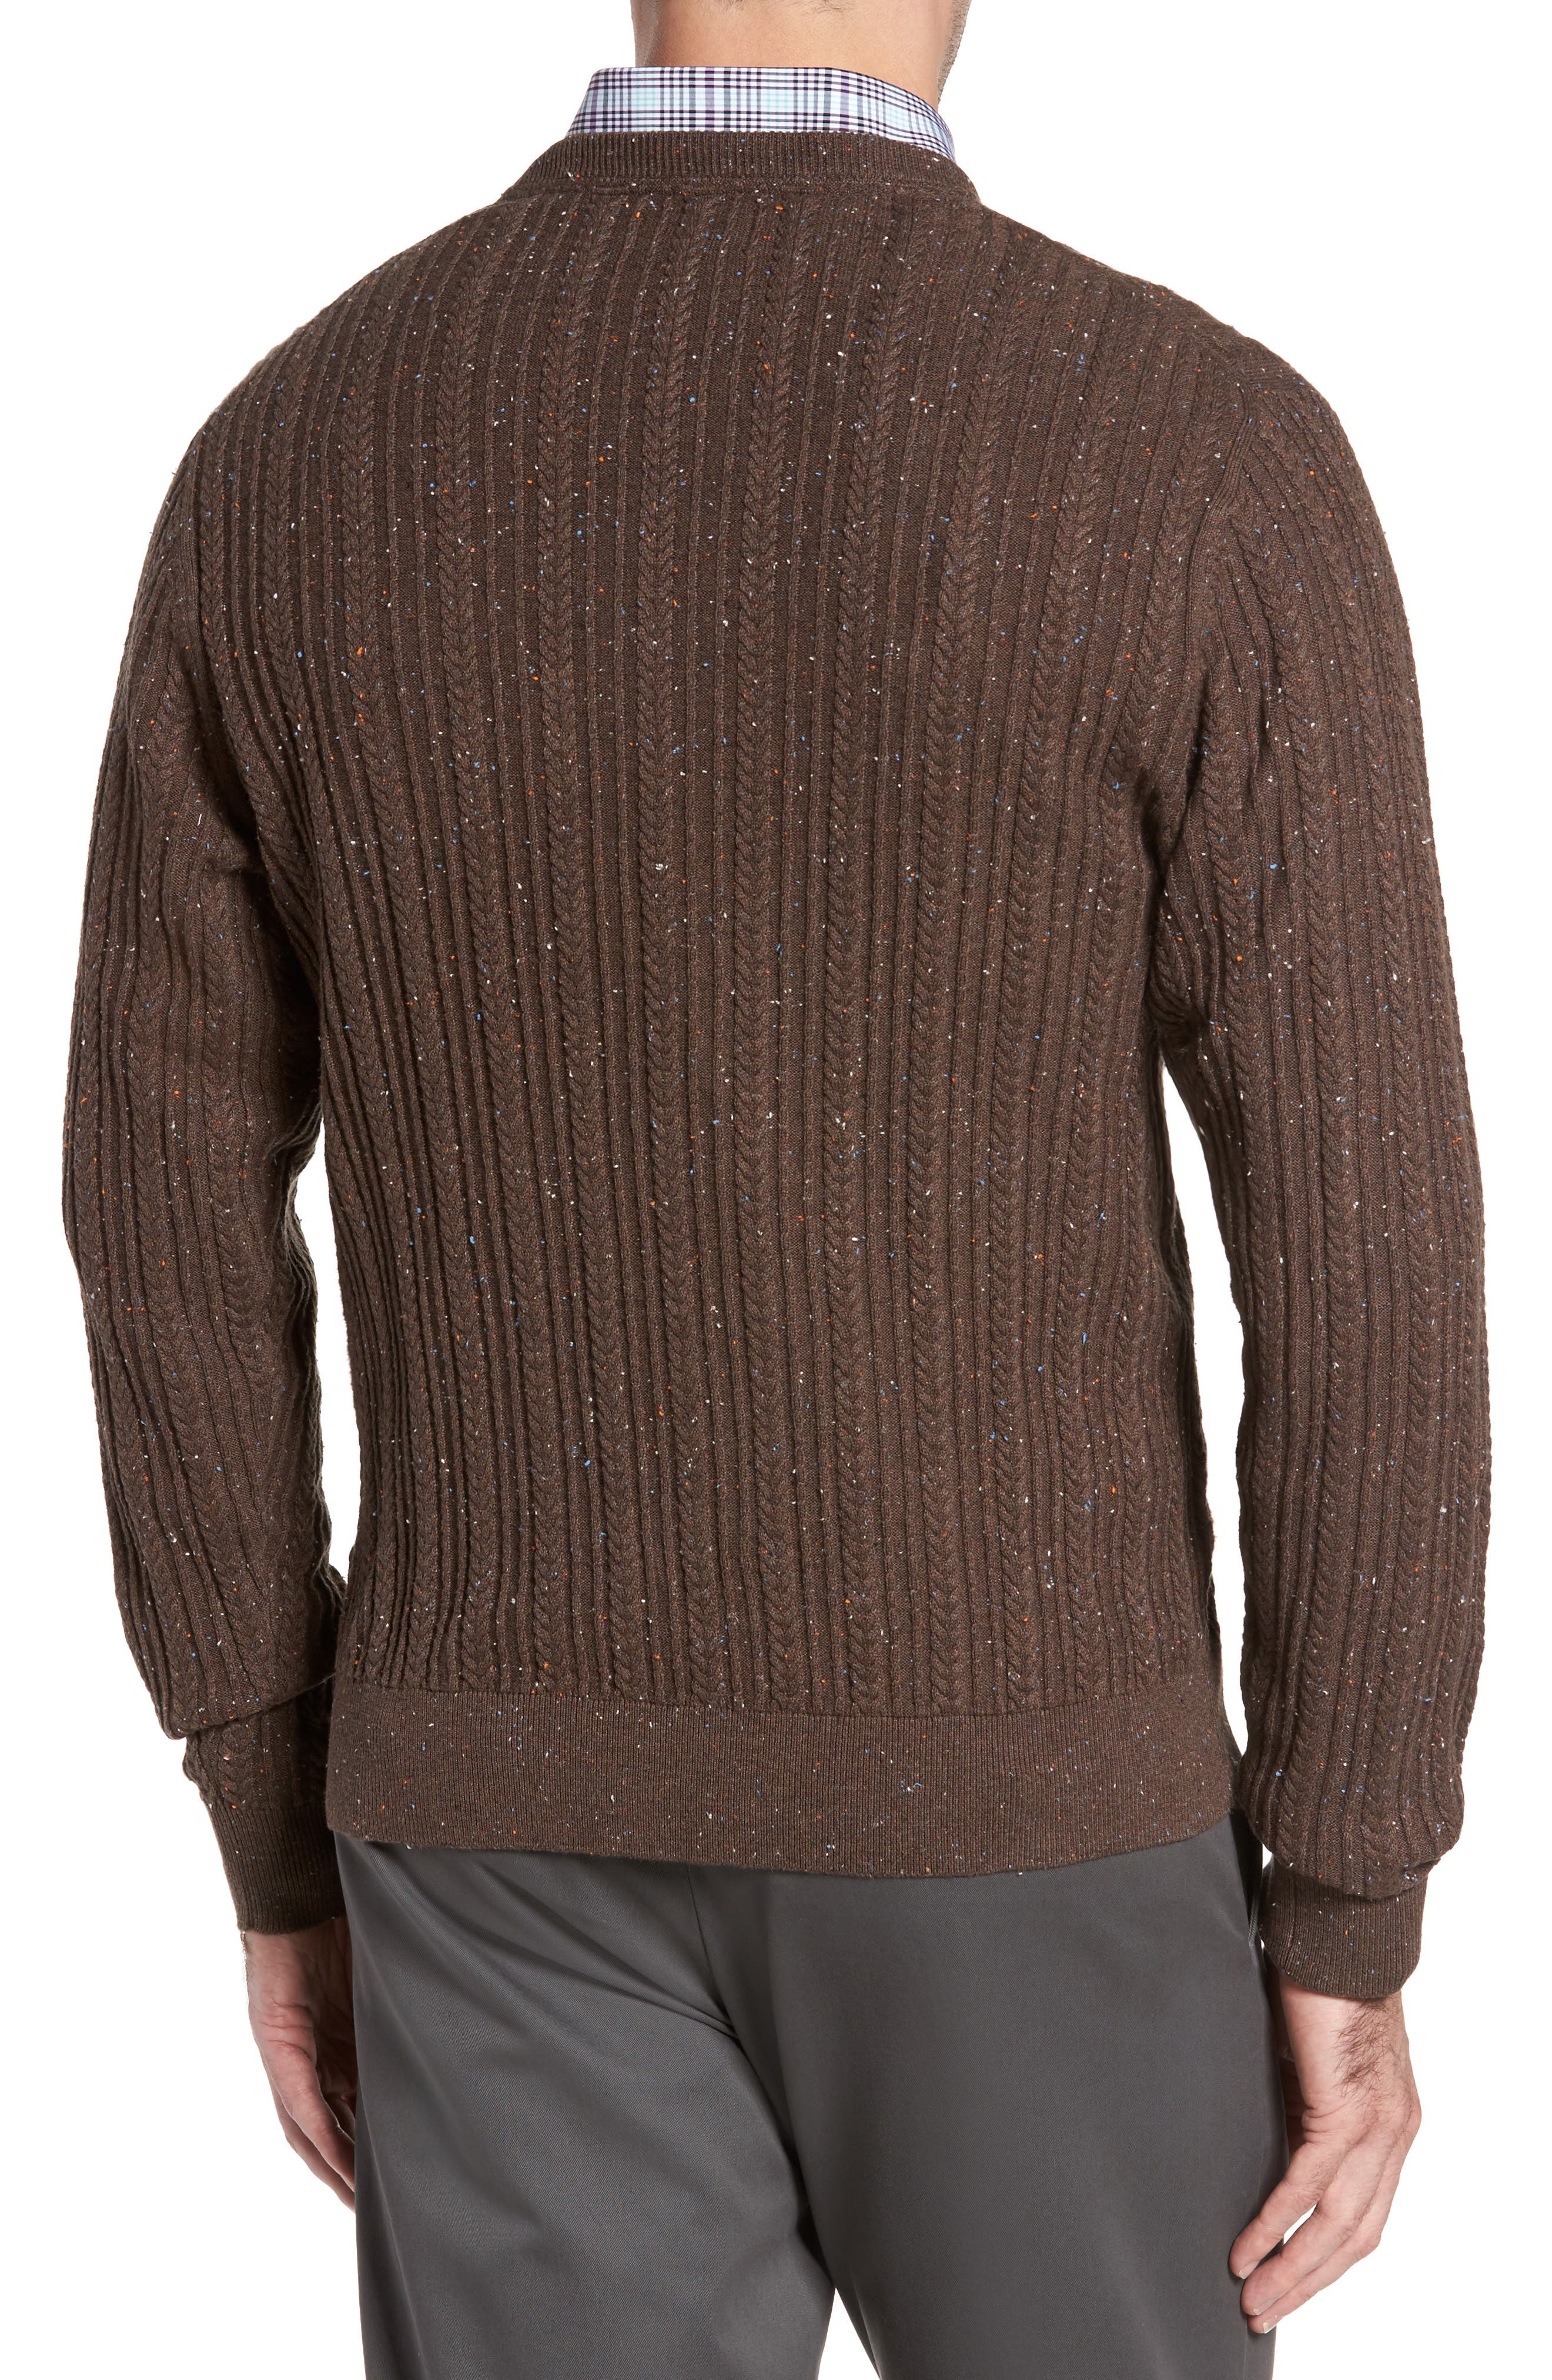 Carlton Crewneck Sweater,                             Alternate thumbnail 2, color,                             Twig